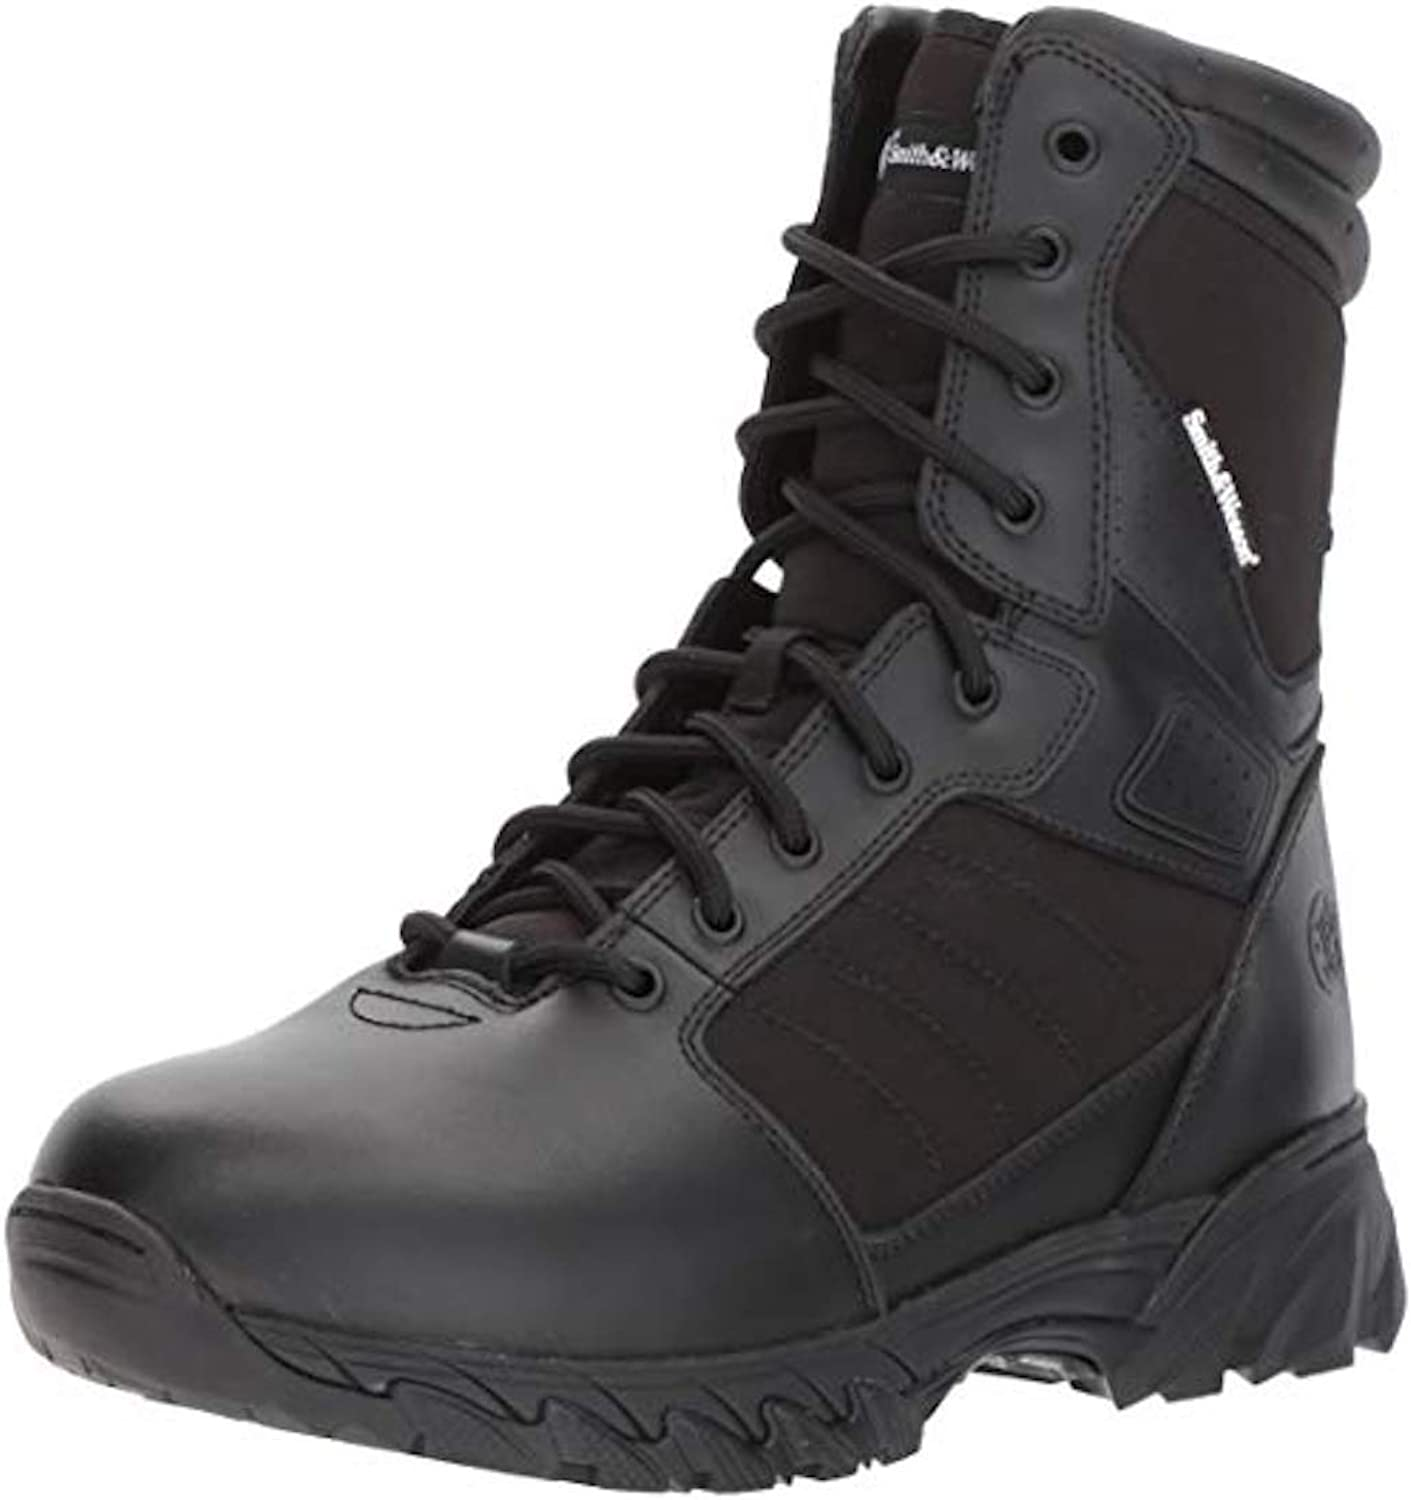 Smith and Wesson Breach 2.0 Men's Tactical Boots, Black, 14D (M) US